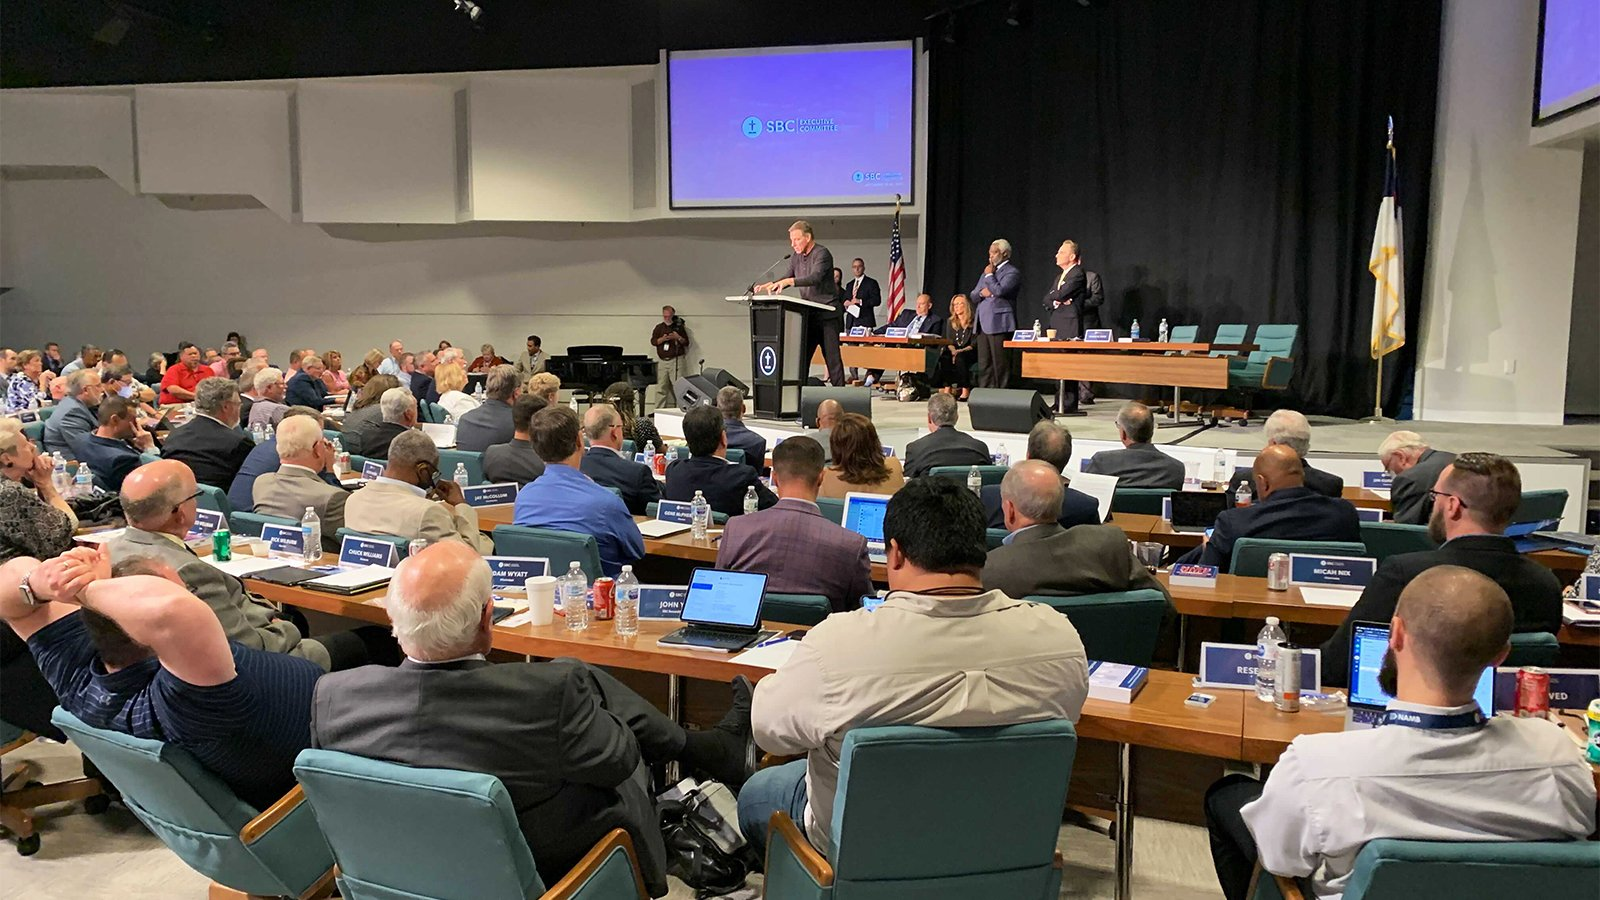 The Rev. Bruce Frank, lead pastor of Biltmore Baptist Church of Arden, North Carolina, speaks during a meeting of the Southern Baptist Convention Executive Committee on Sept. 21, 2021, in Nashville, Tennessee. RNS photo by Bob Smietana